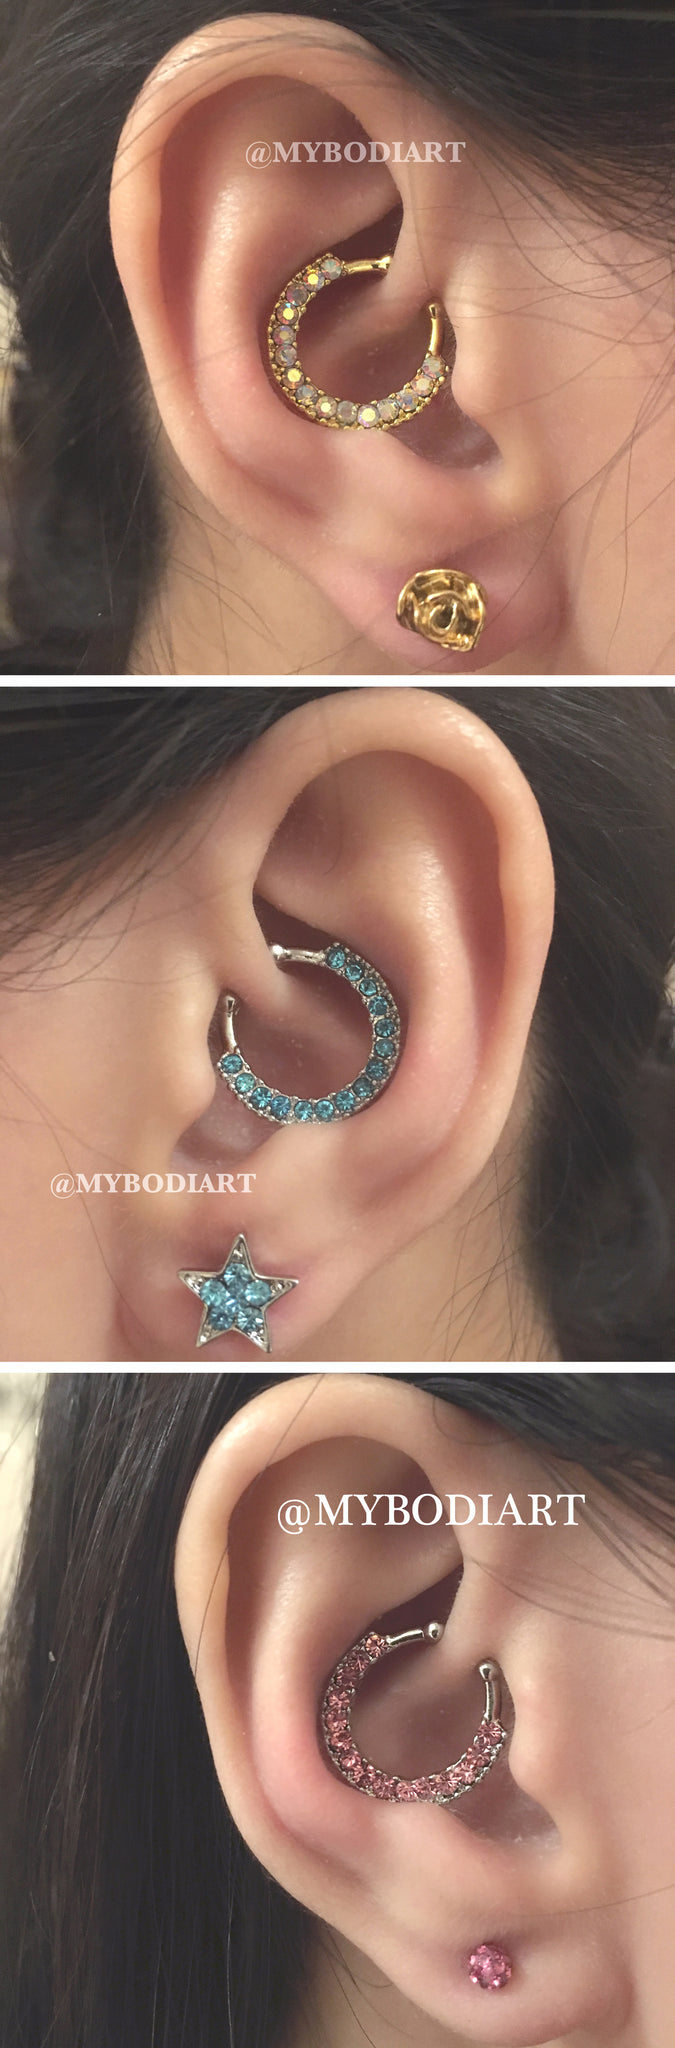 Cute Ear Piercing Ideas - Cartilage Daith Rook Ring Hoop Crystal Earring Stud 16G - www.MyBodiArt.com